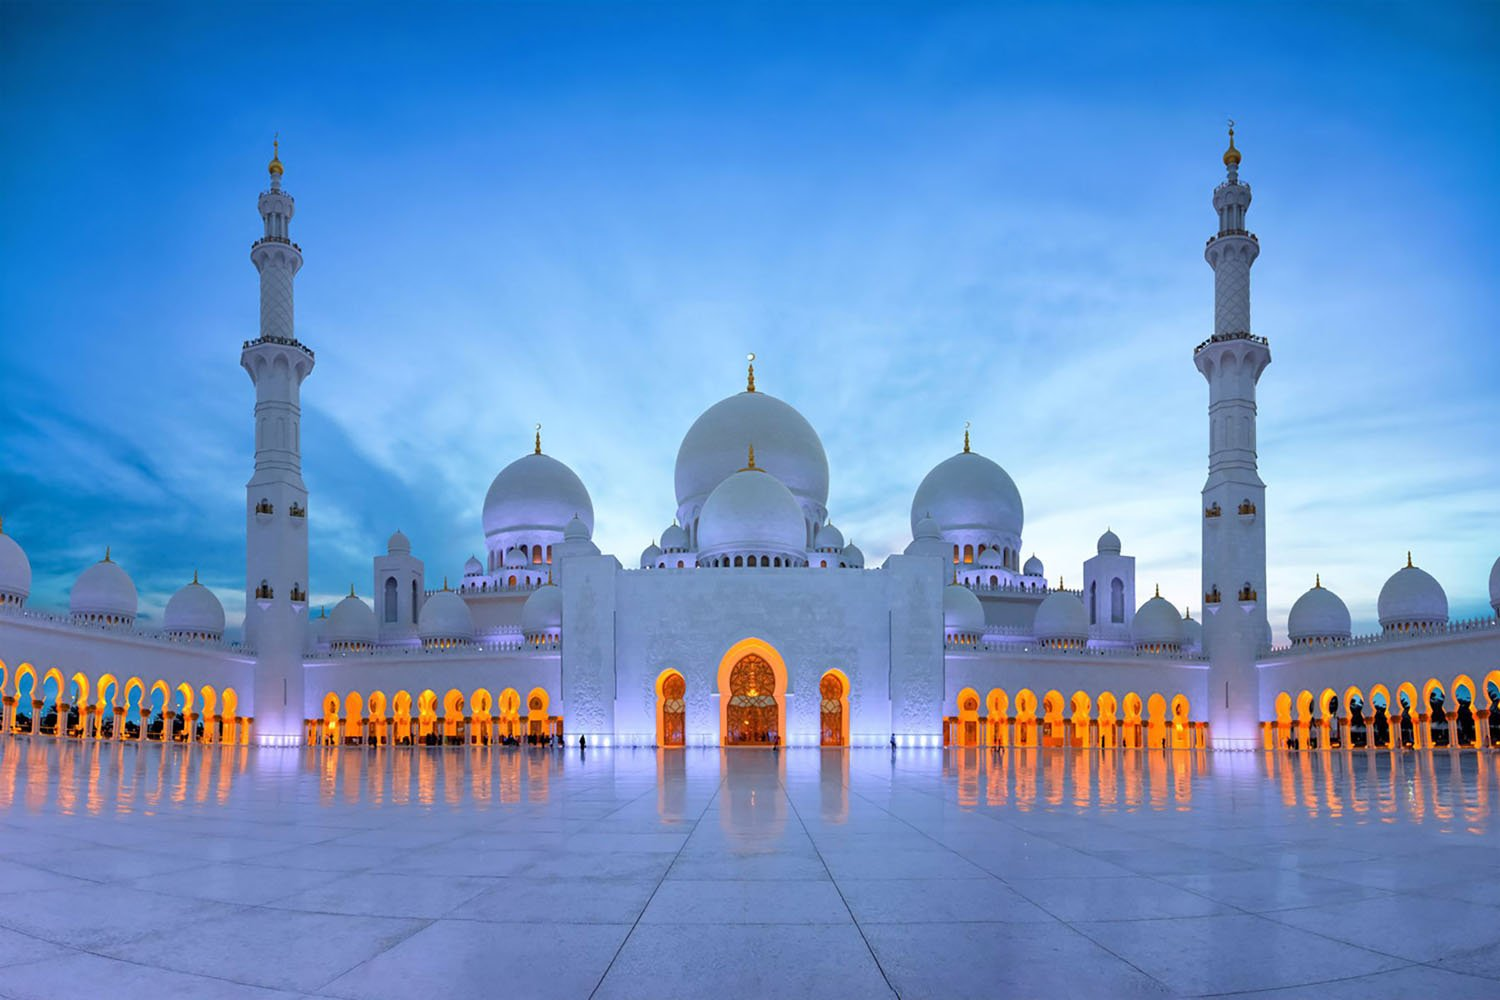 Sheikh Zayed Grand Mosque in the early evening